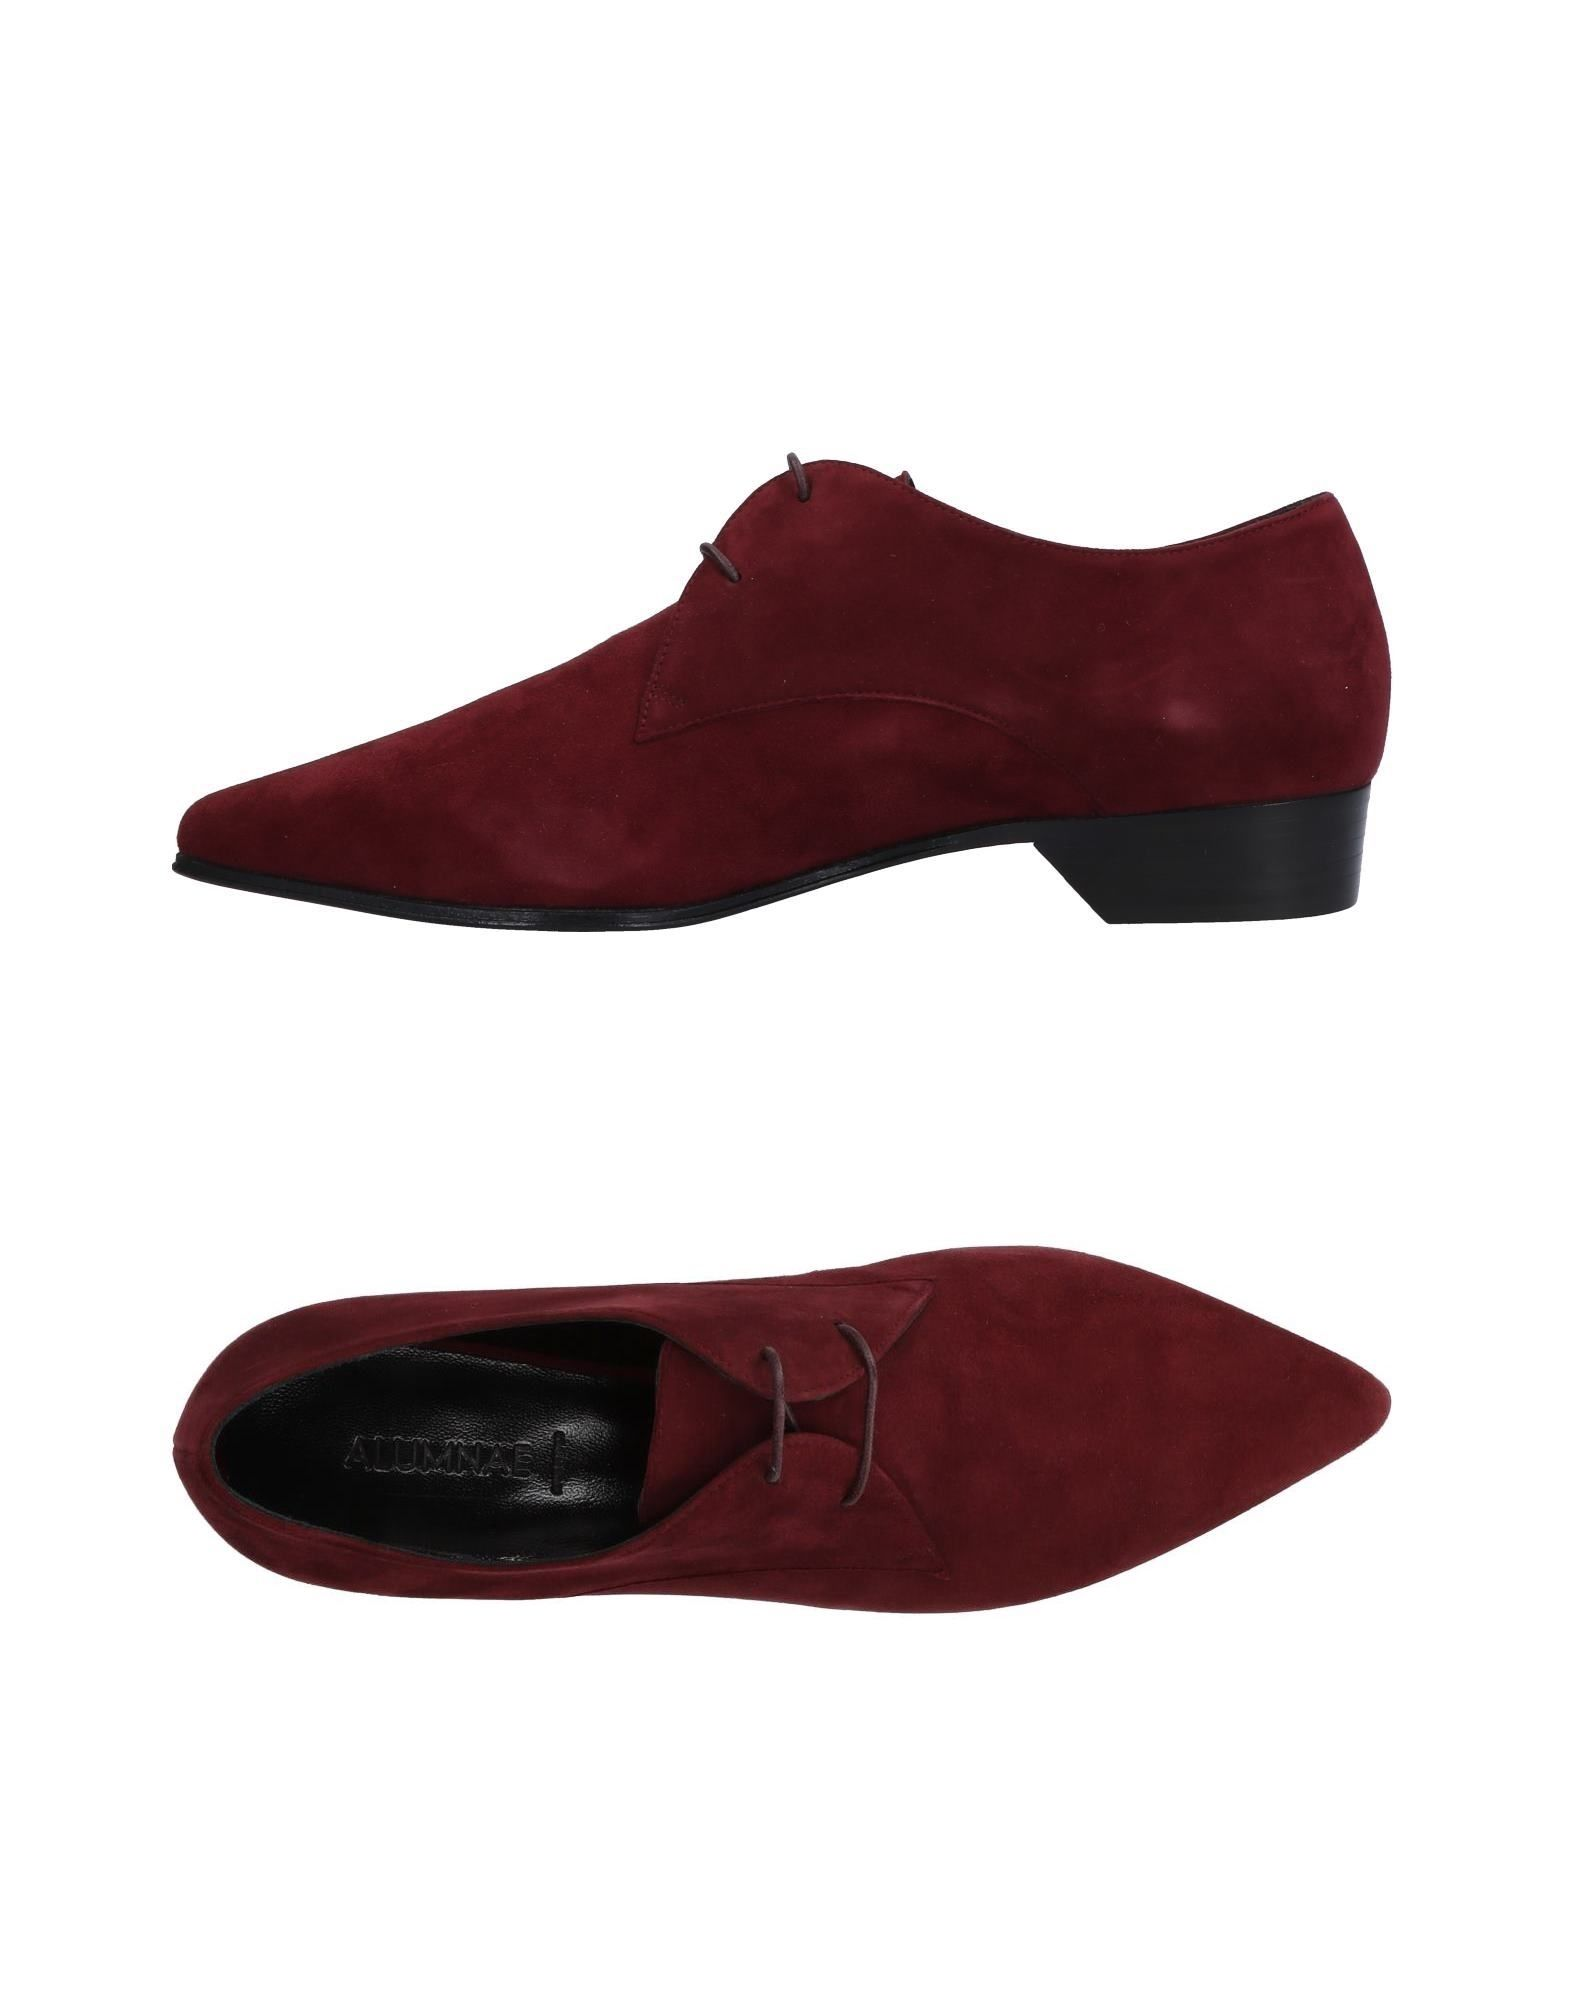 ALUMNAE Laced Shoes in Maroon